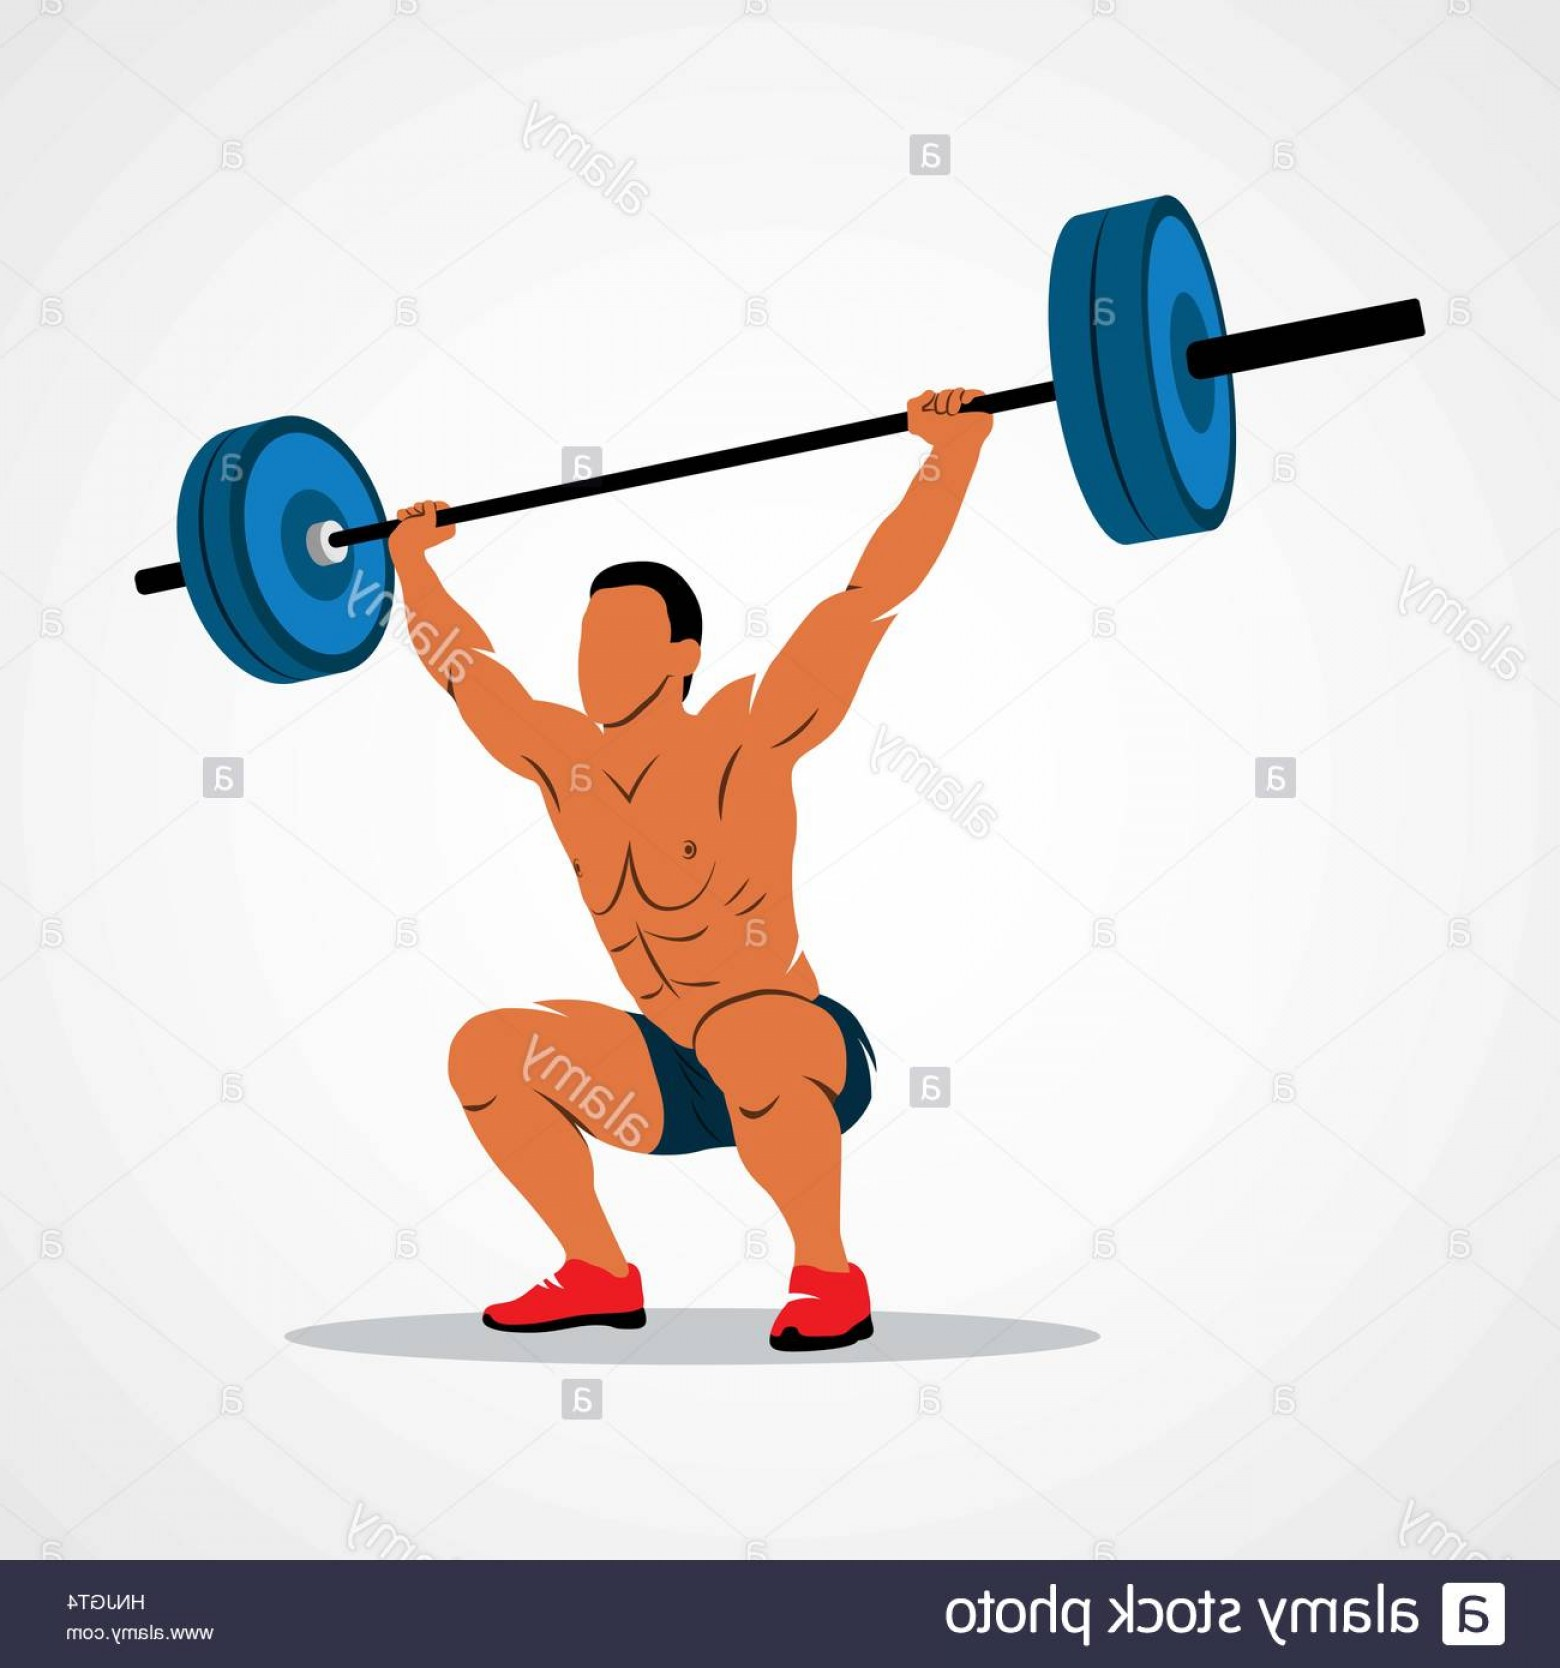 Weightlifter Vector Art: Stock Photo Strong Man Lifting Weights Powerlifting Weightlifting Vector Illustration